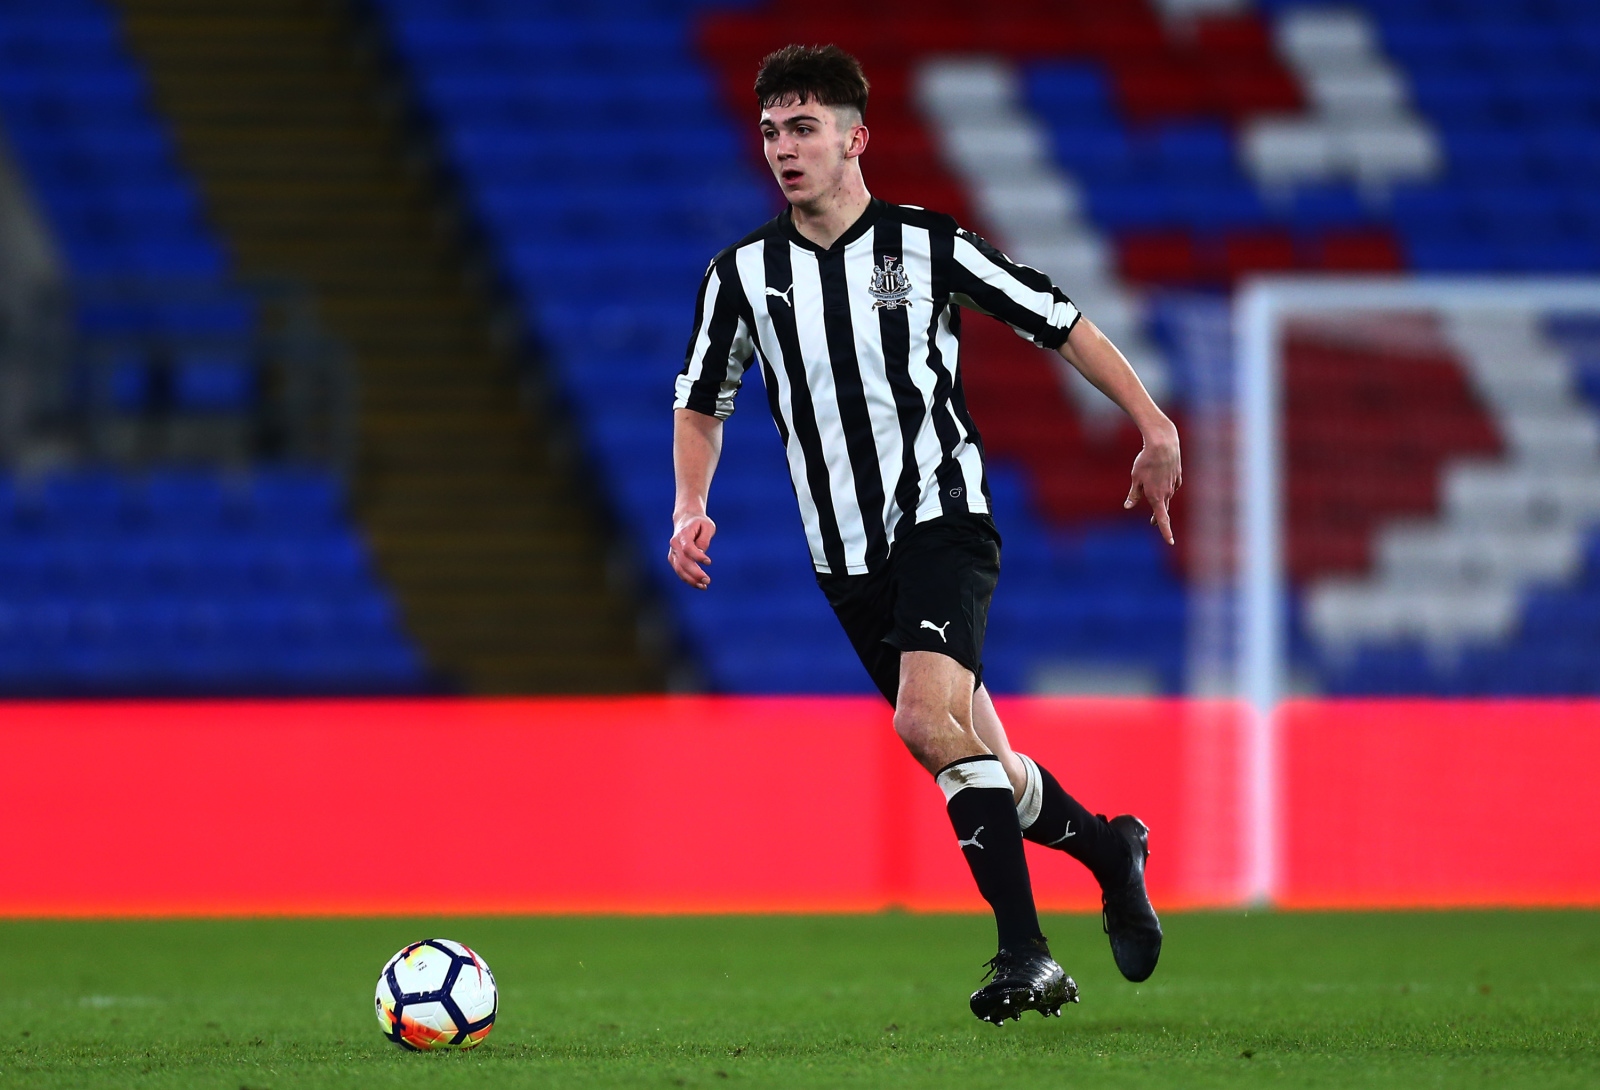 Clark's injury gives McEntee a chance to impress the Newcastle staff